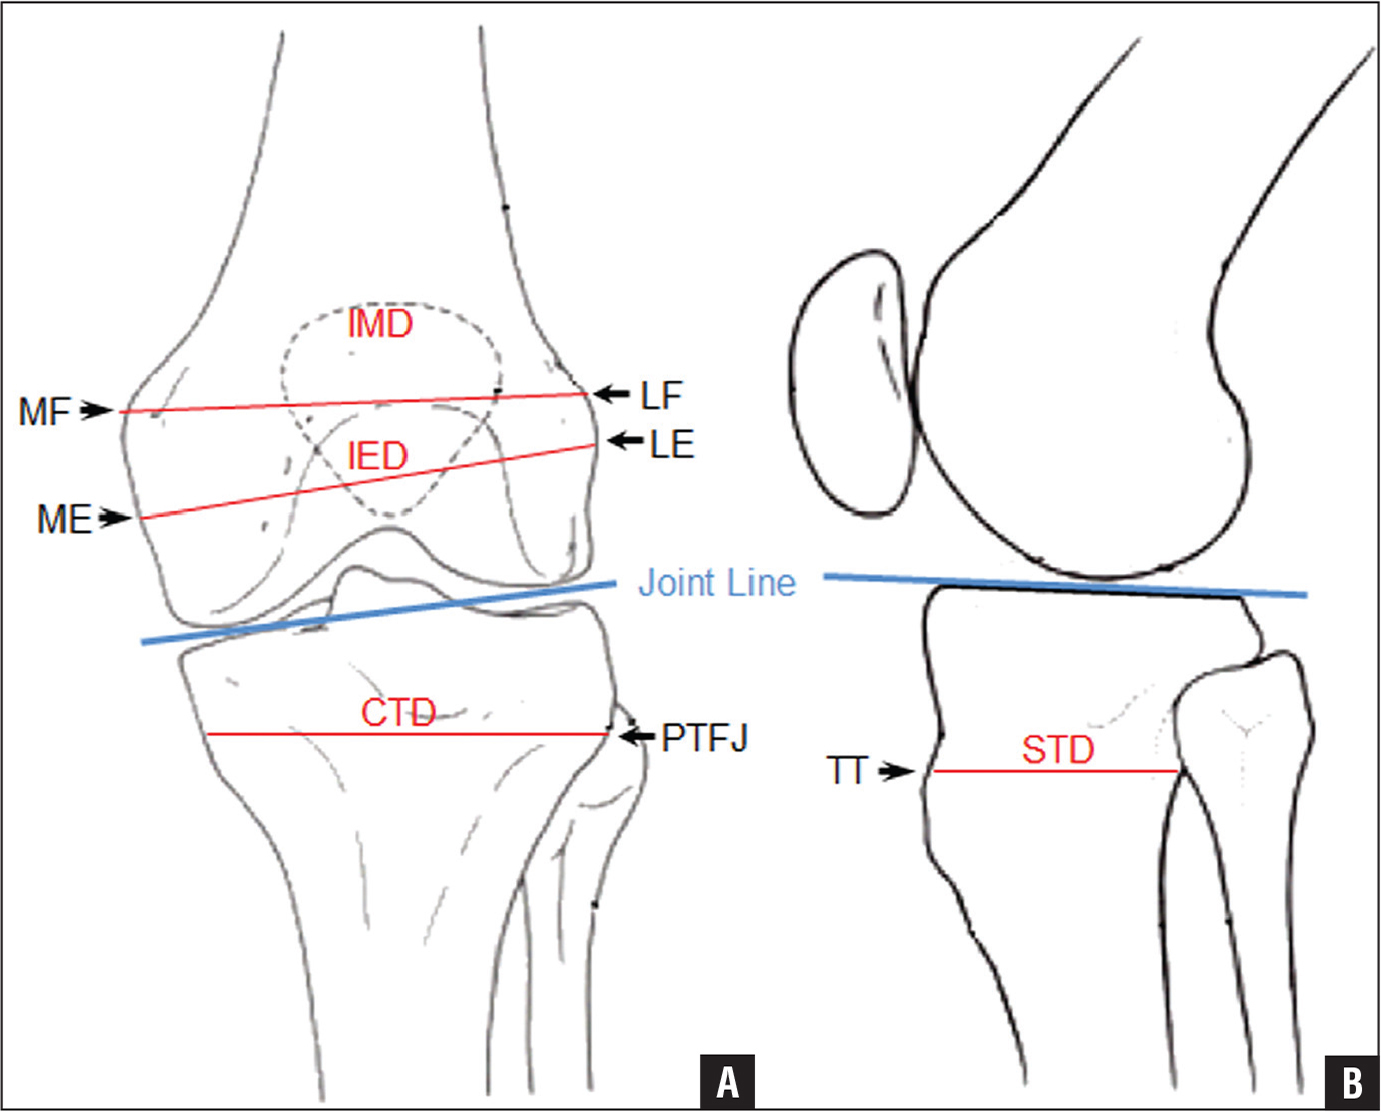 Calculating The Position Of The Joint Line Of The Knee Using Anatomical Landmarks